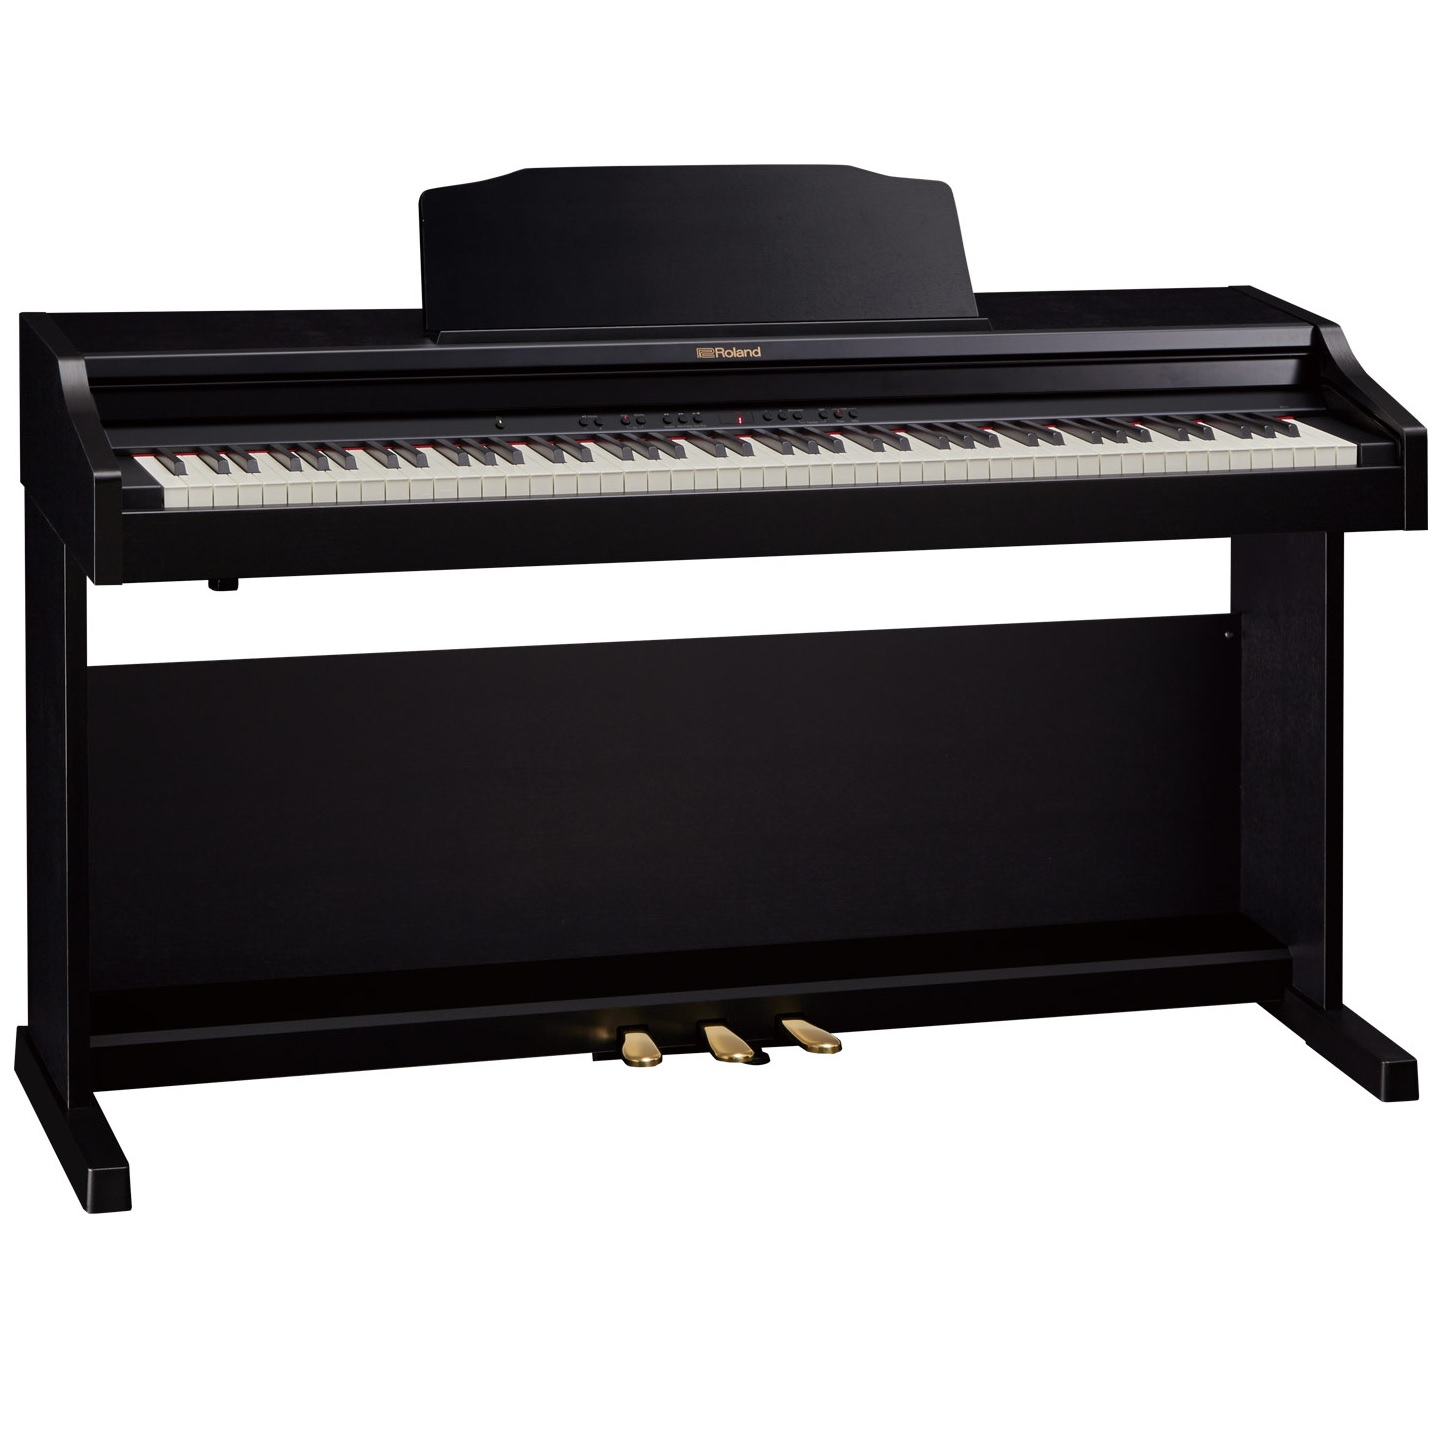 Piano Điện Roland RP-501R